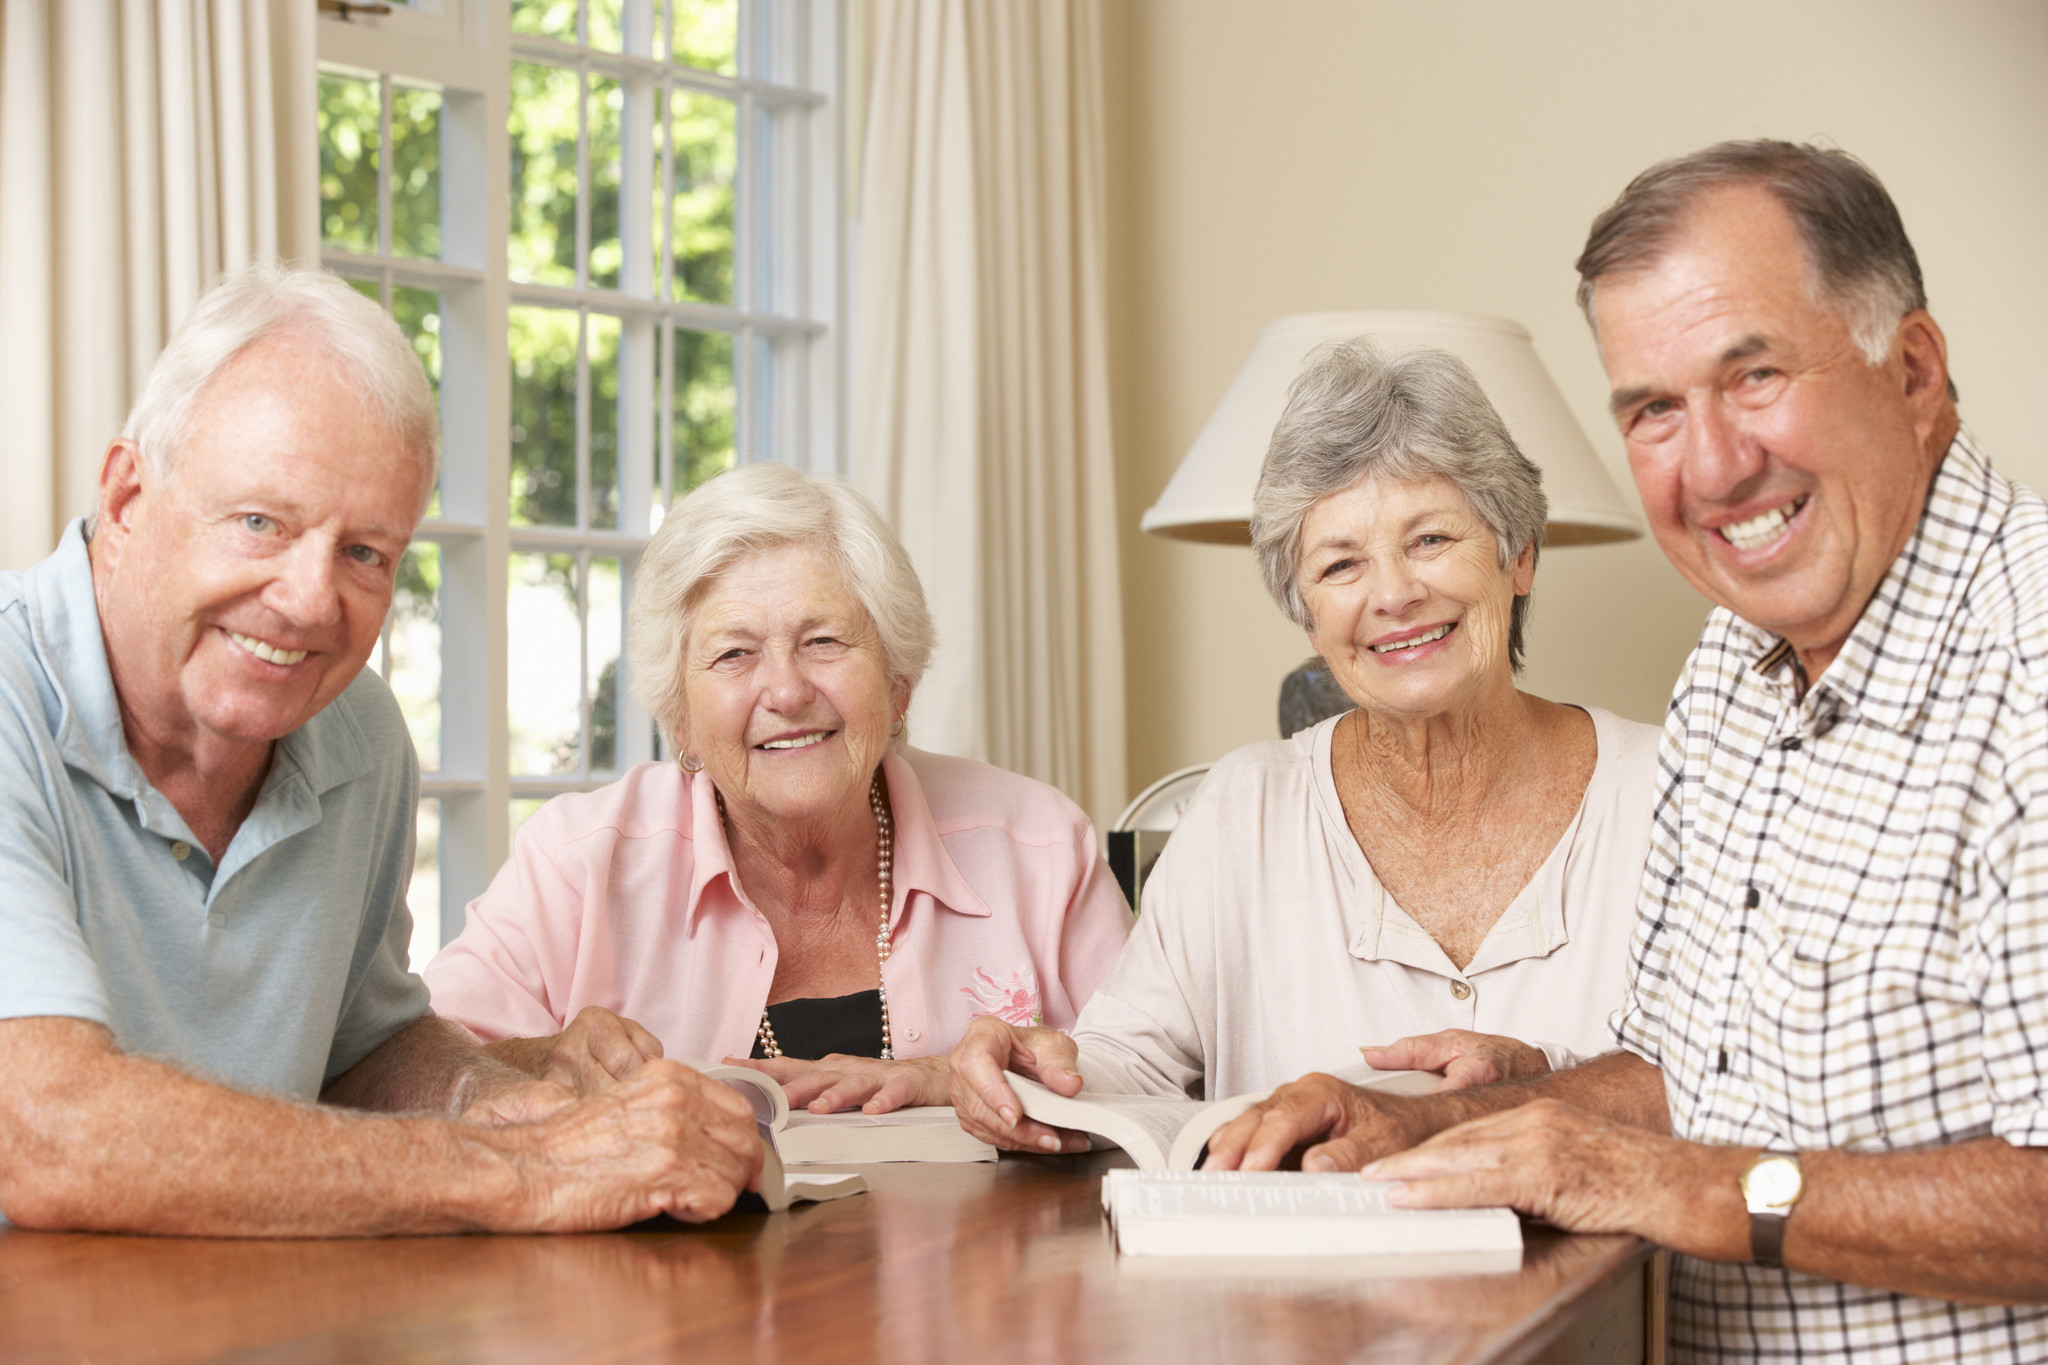 6 Steps to Help Reduce Senior Isolation and Improve Social Interaction - Orlando Sentinel